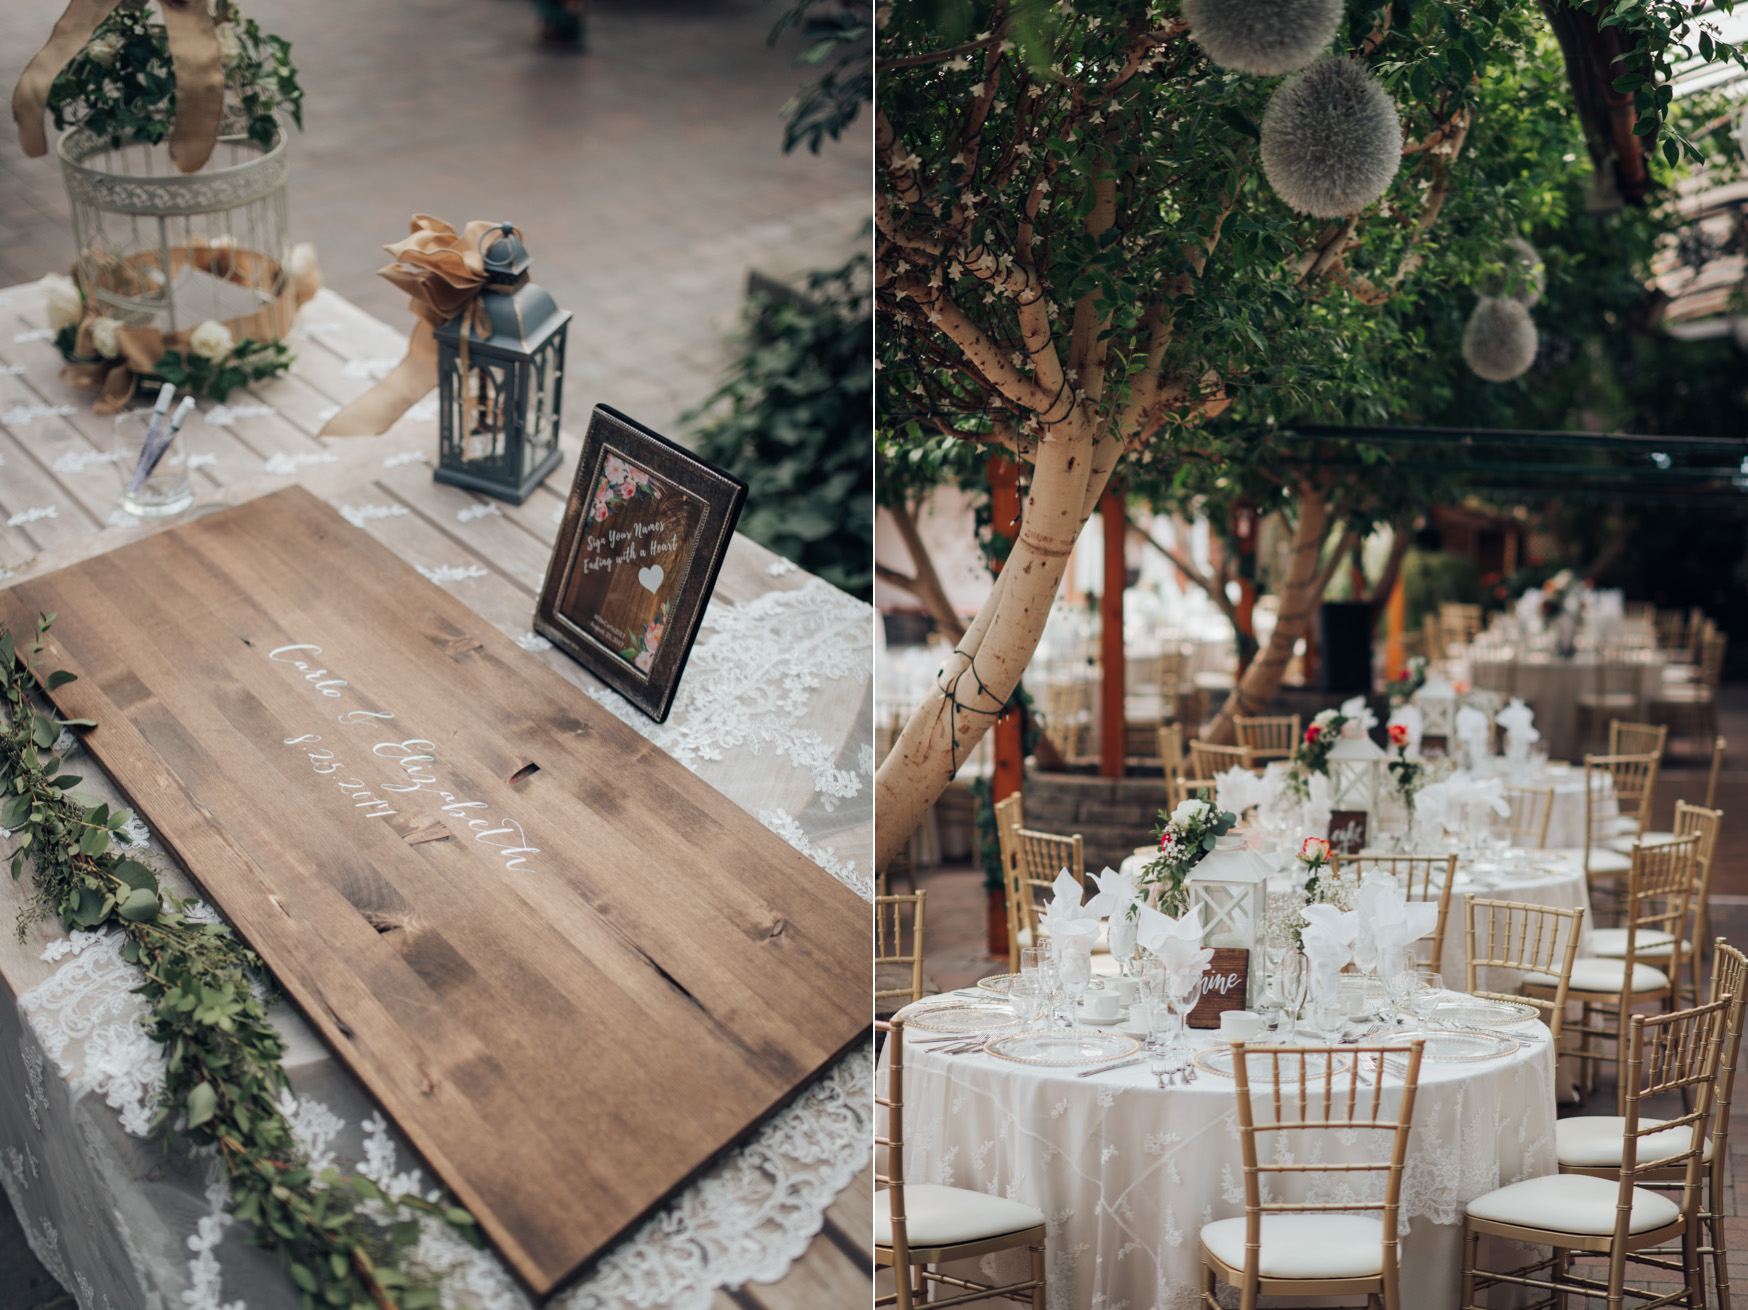 GTA Madsen's Greenhouse Wedding Table setting details